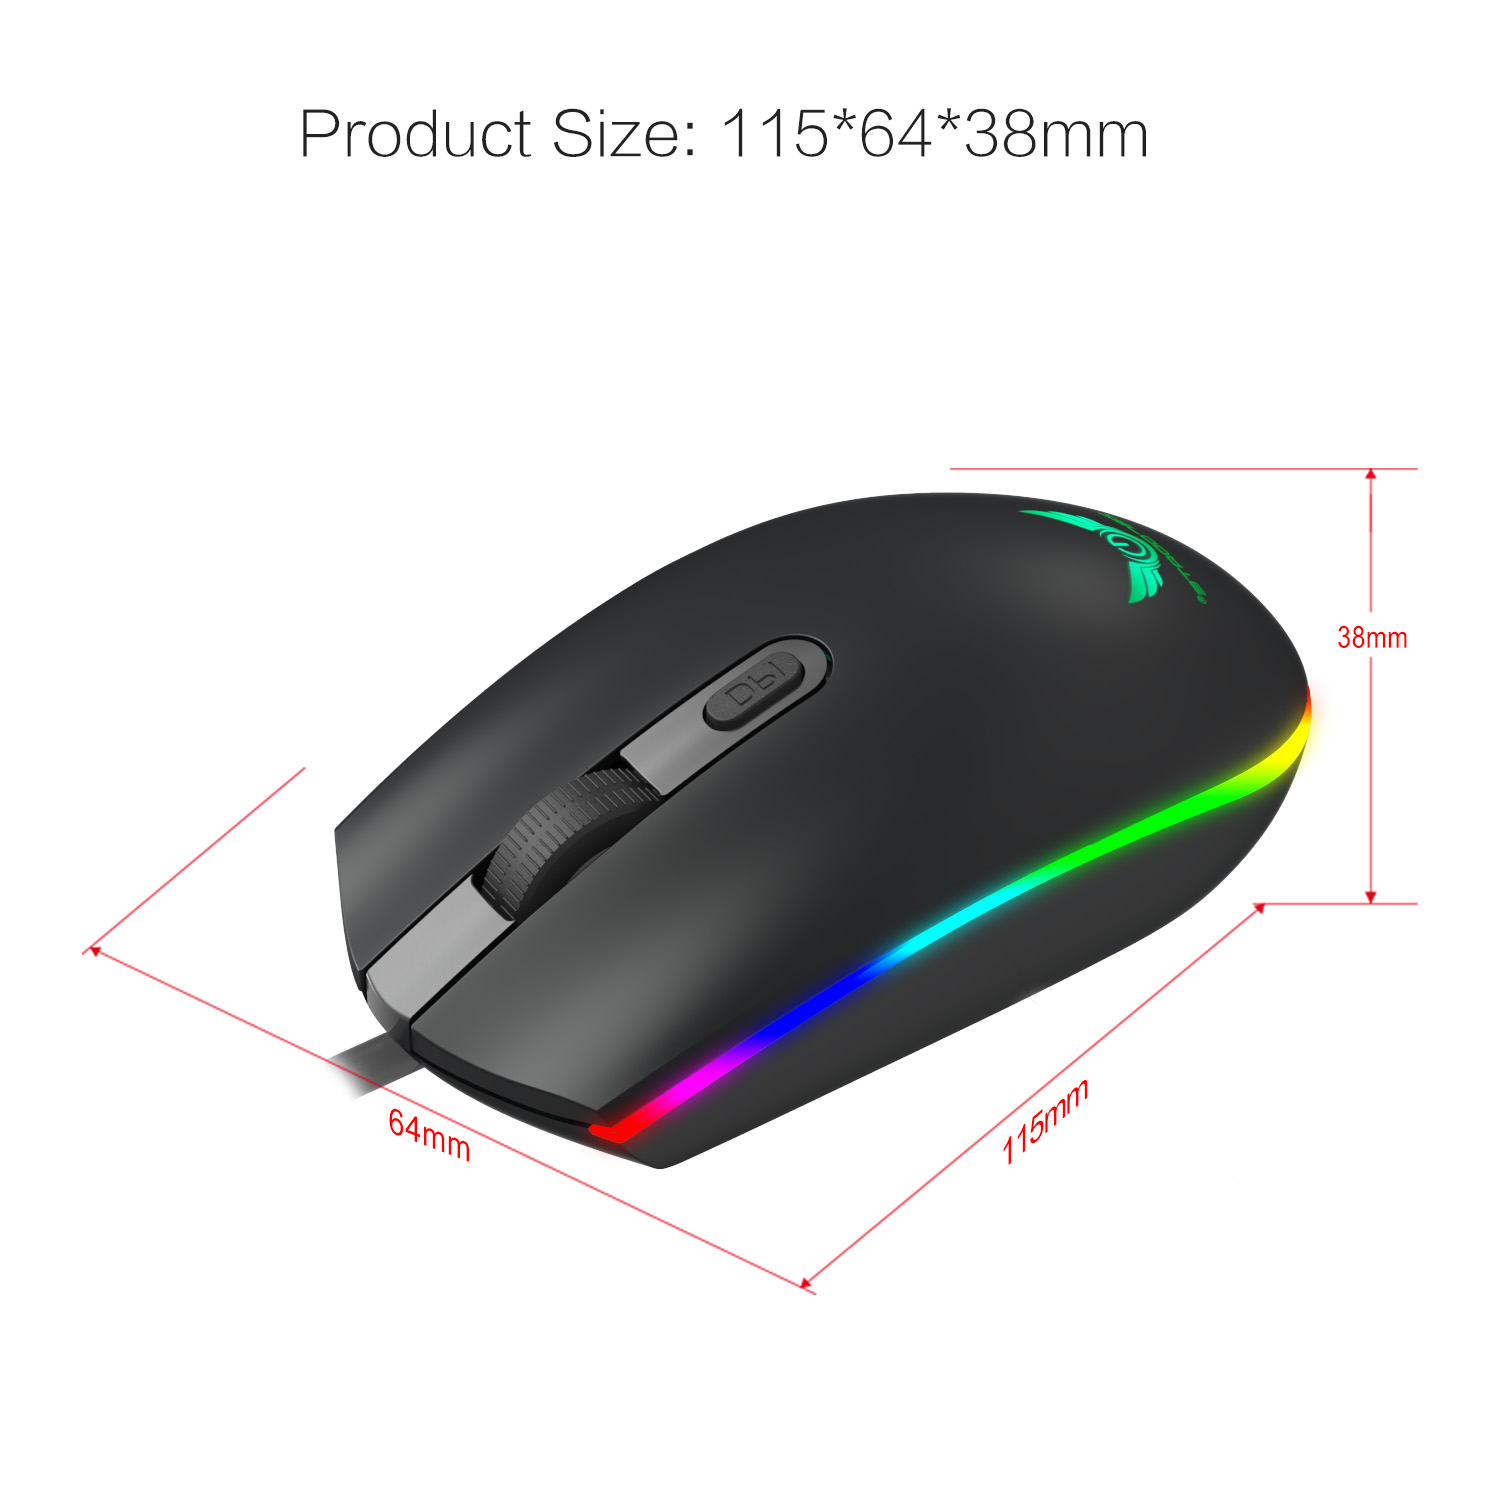 HXSJ S900 1600DPI RGB Full-color Marquee LED Backlight USB Wired Gaming Mouse